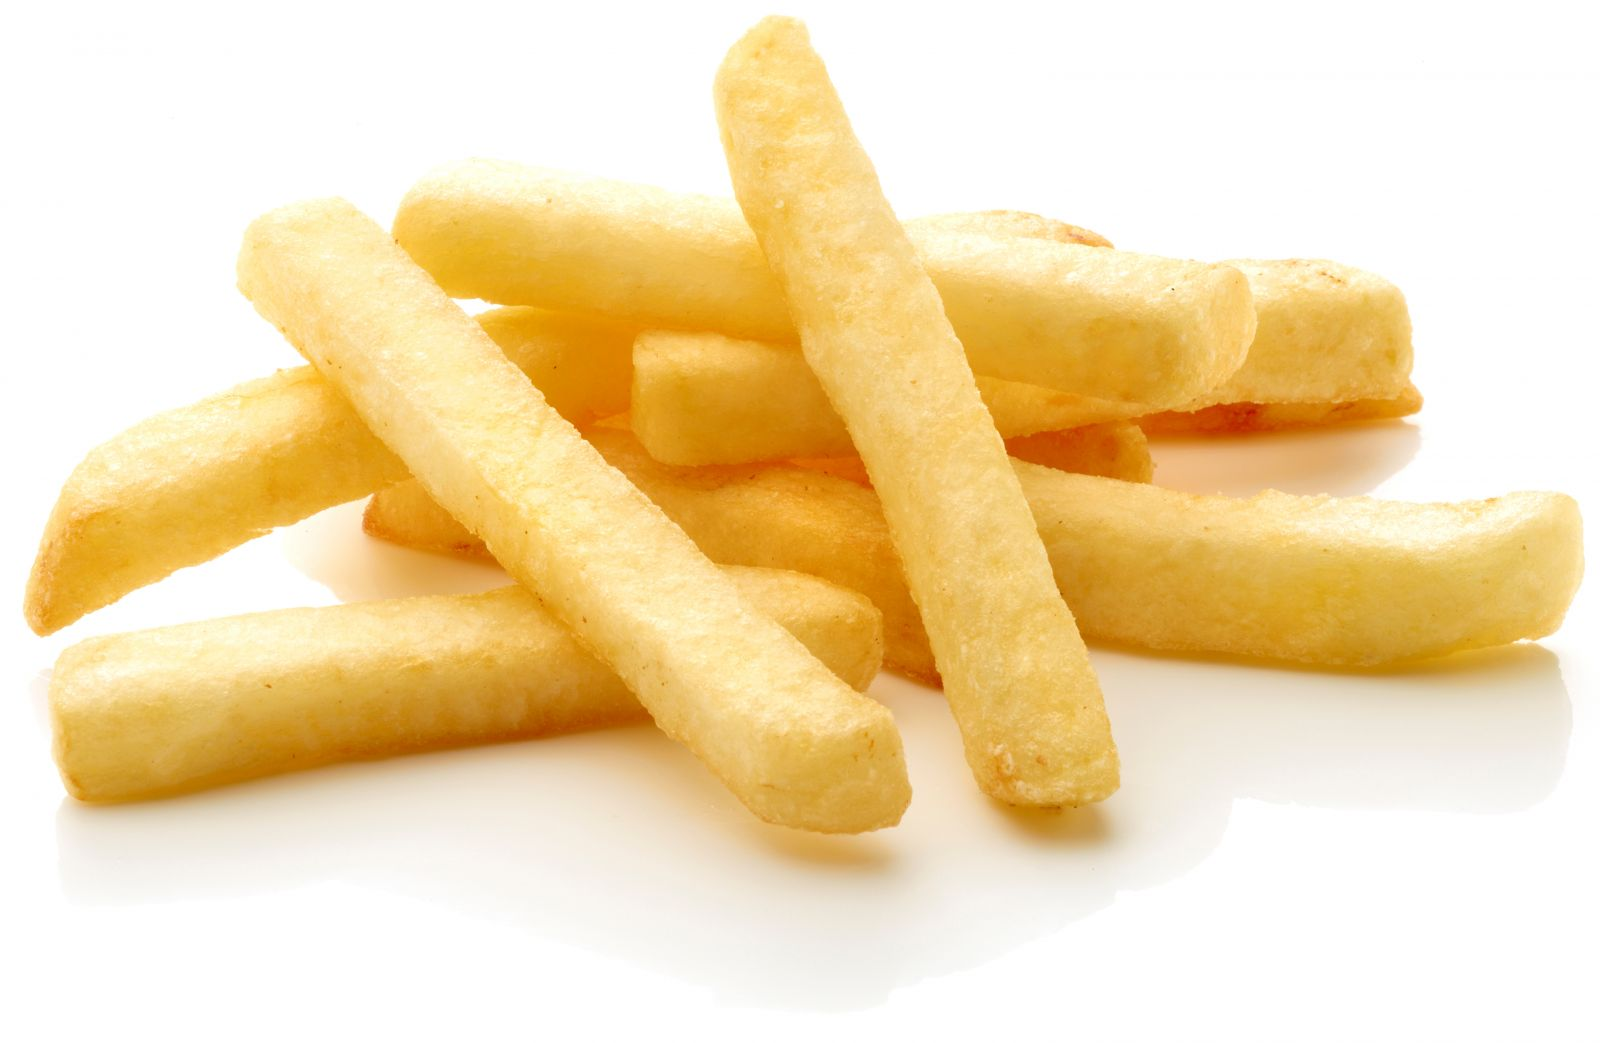 1600x1043 - French Fries Wallpapers - French Fries PNG HD